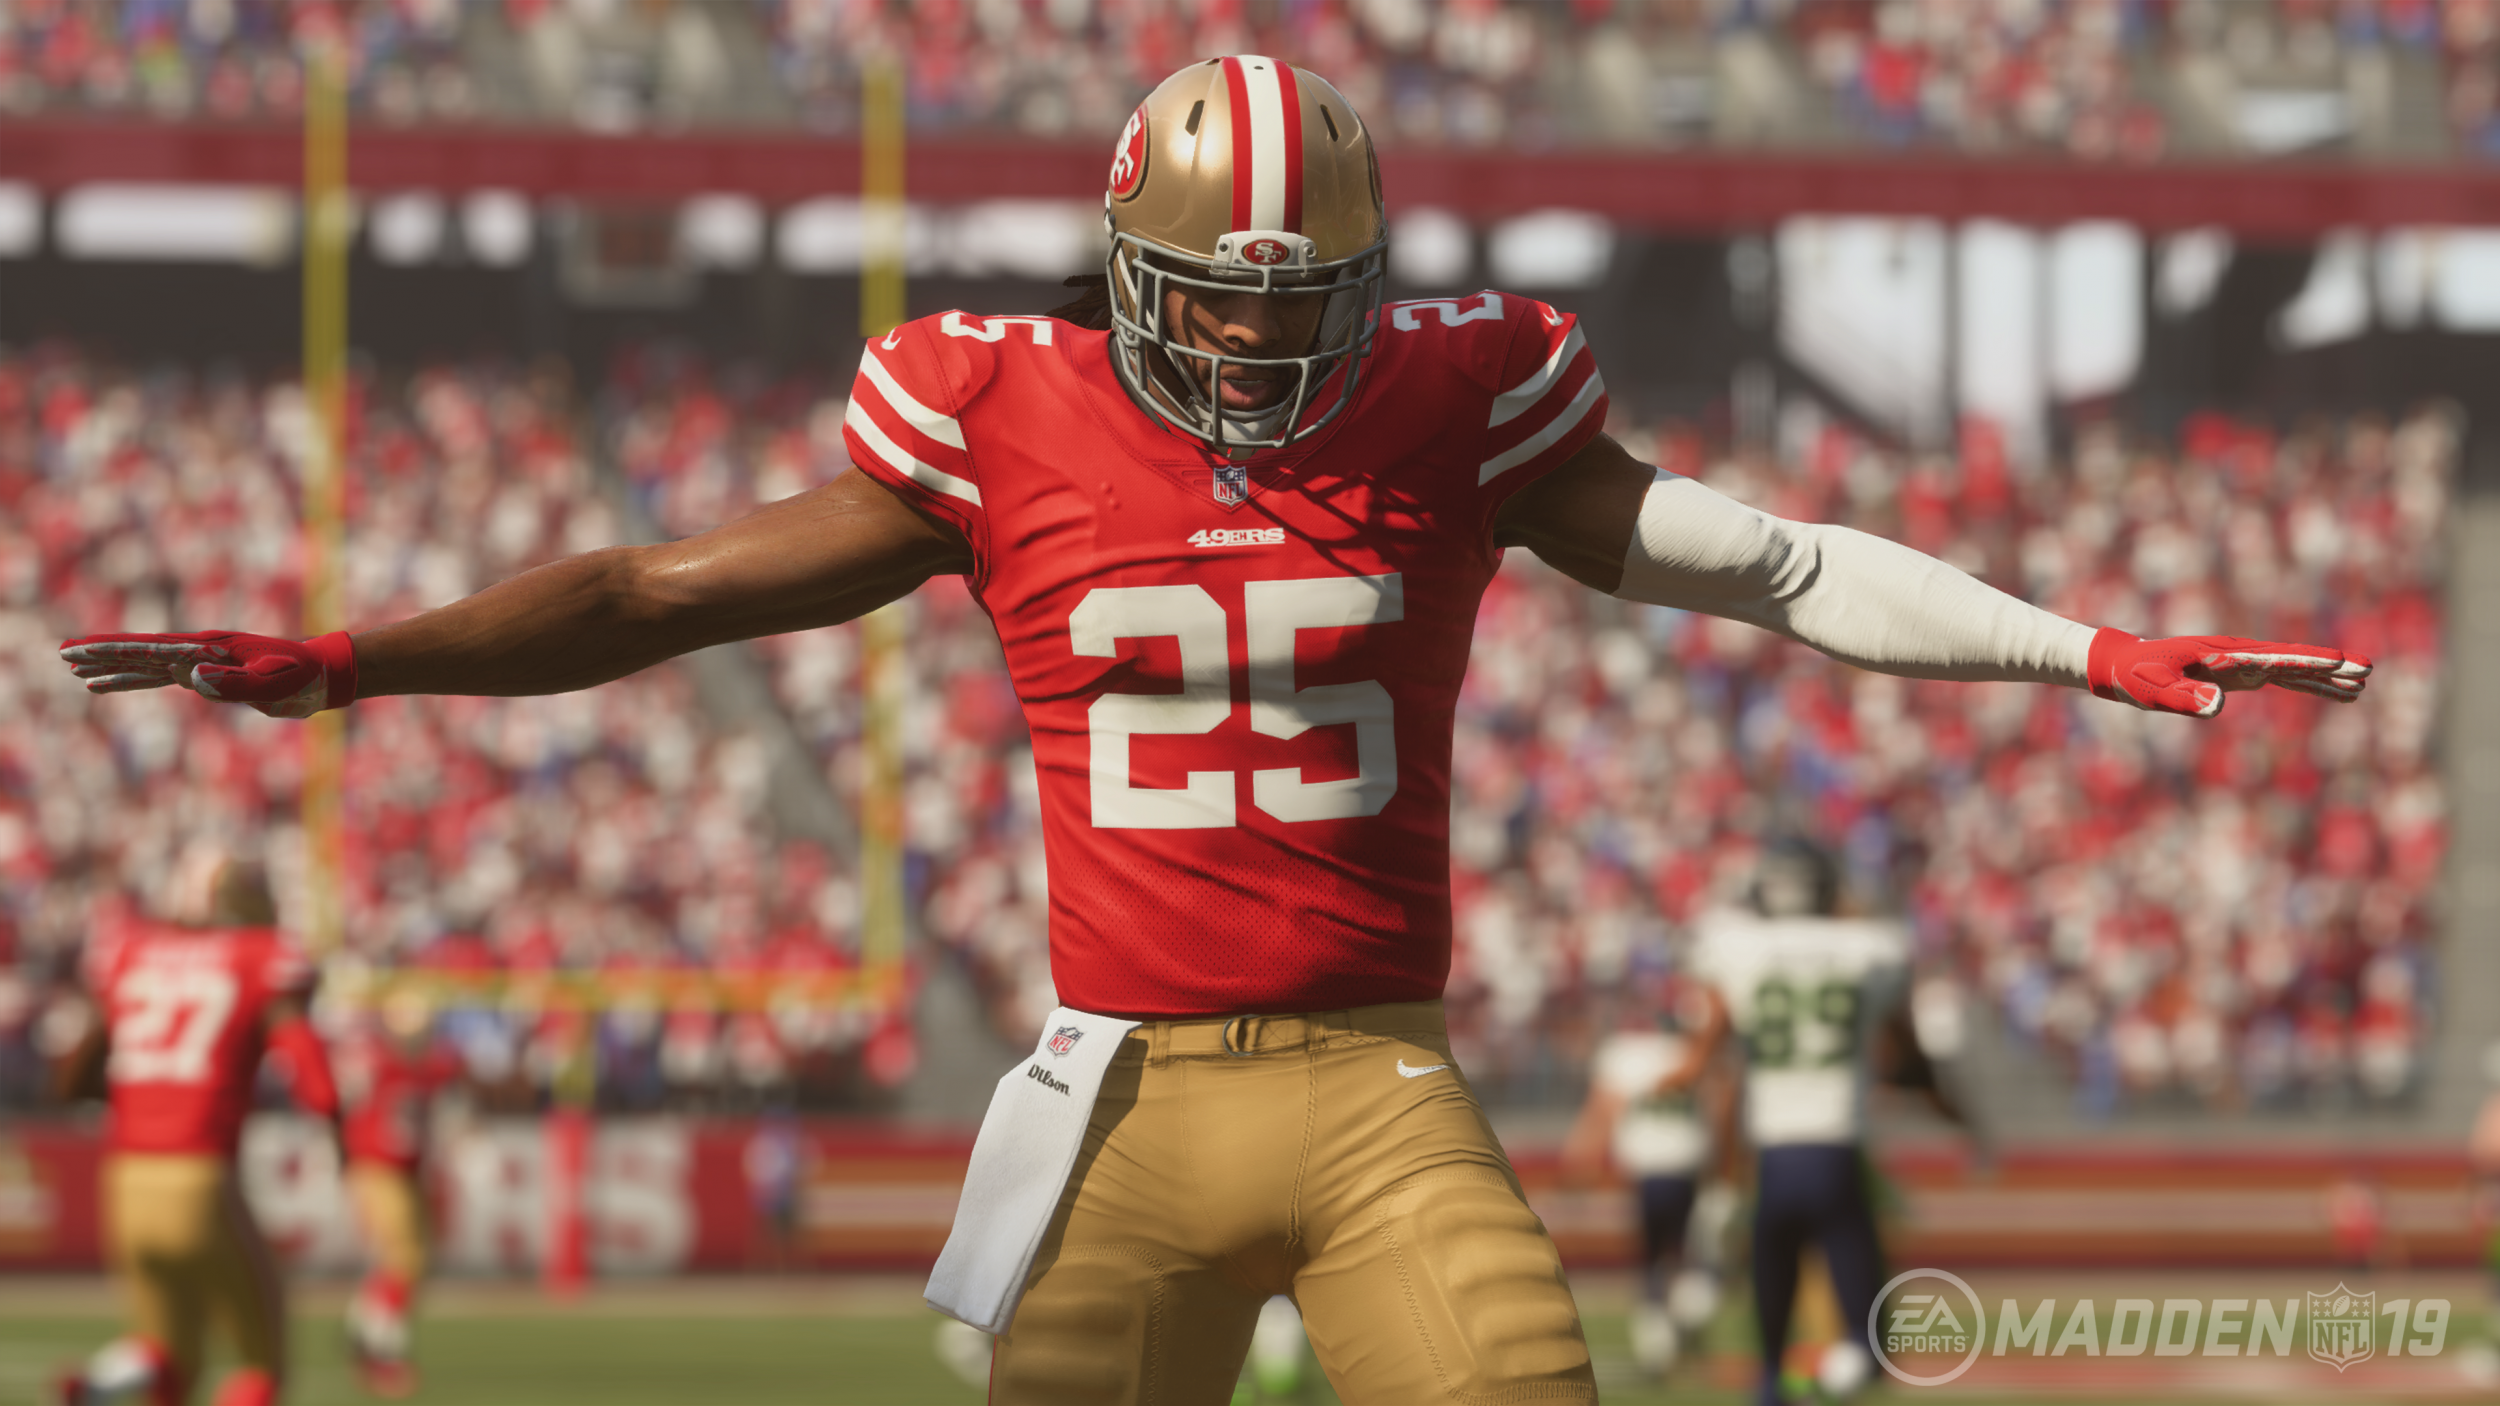 Madden Nfl 19 Download Time When Can Fans Play The Popular Football Game